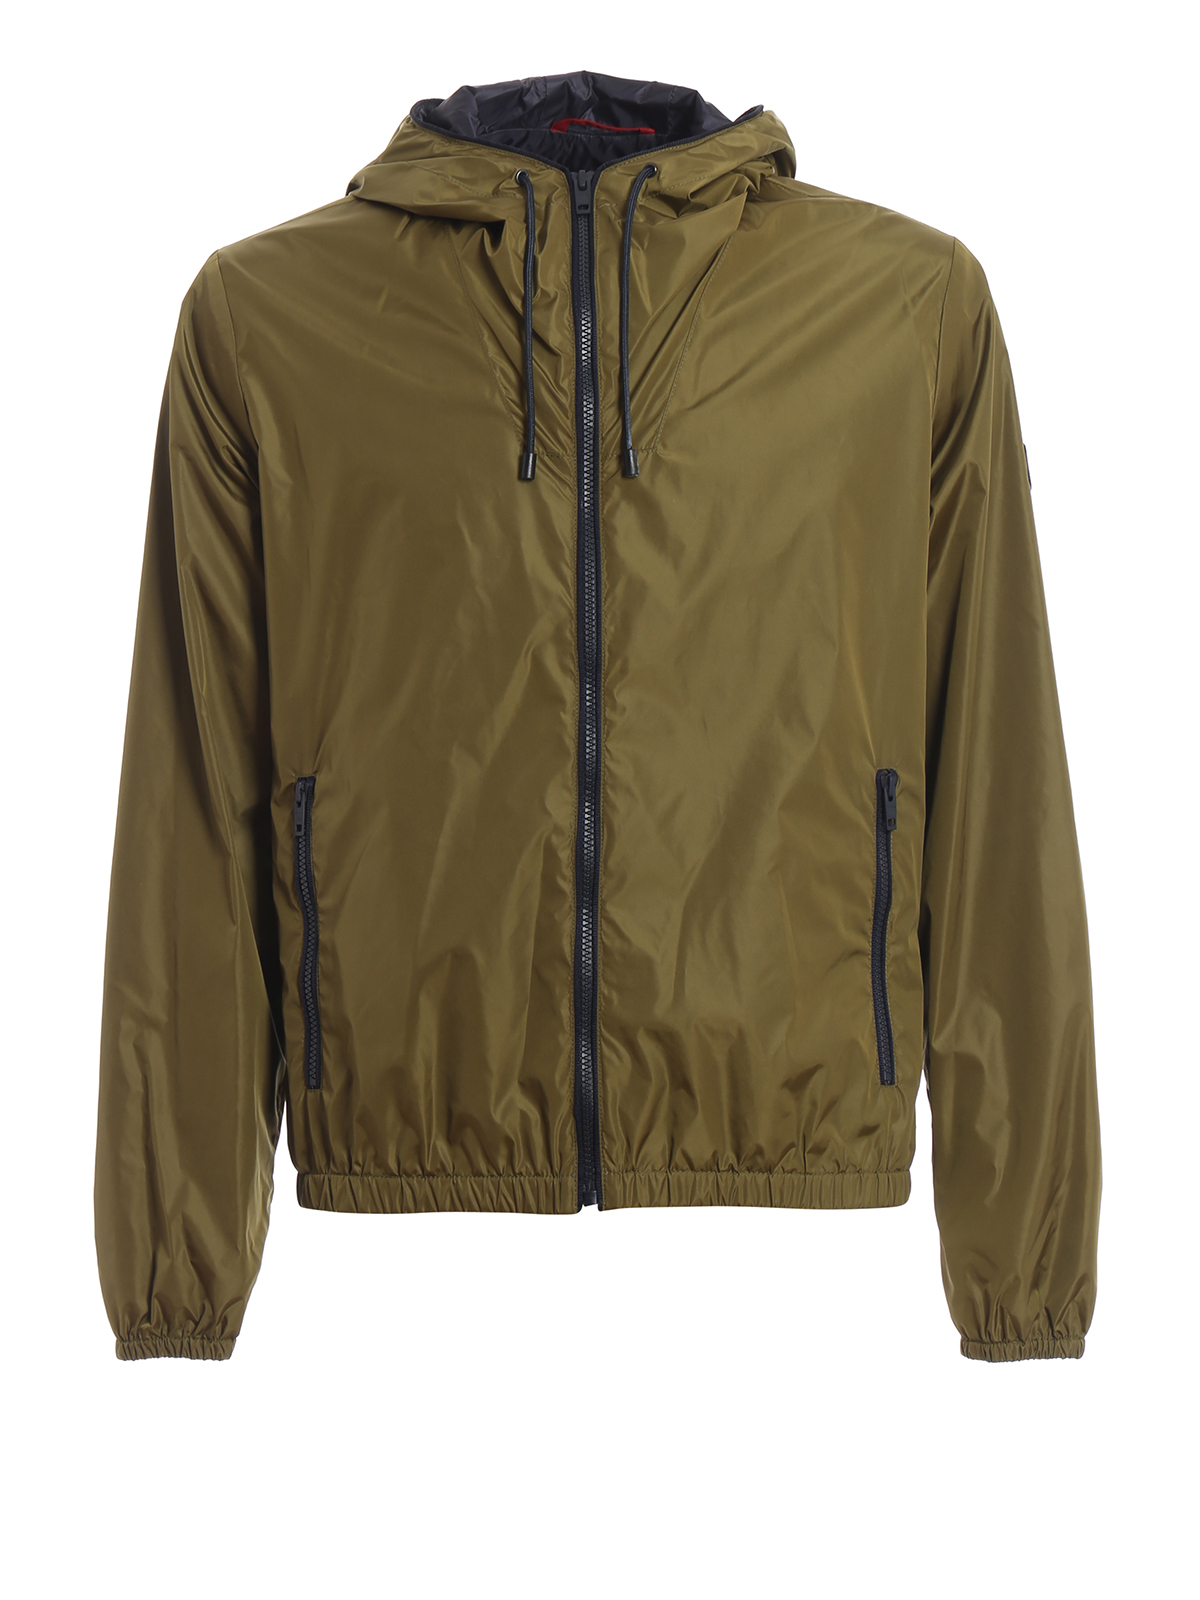 Olive green glossy nylon hooded windbreaker